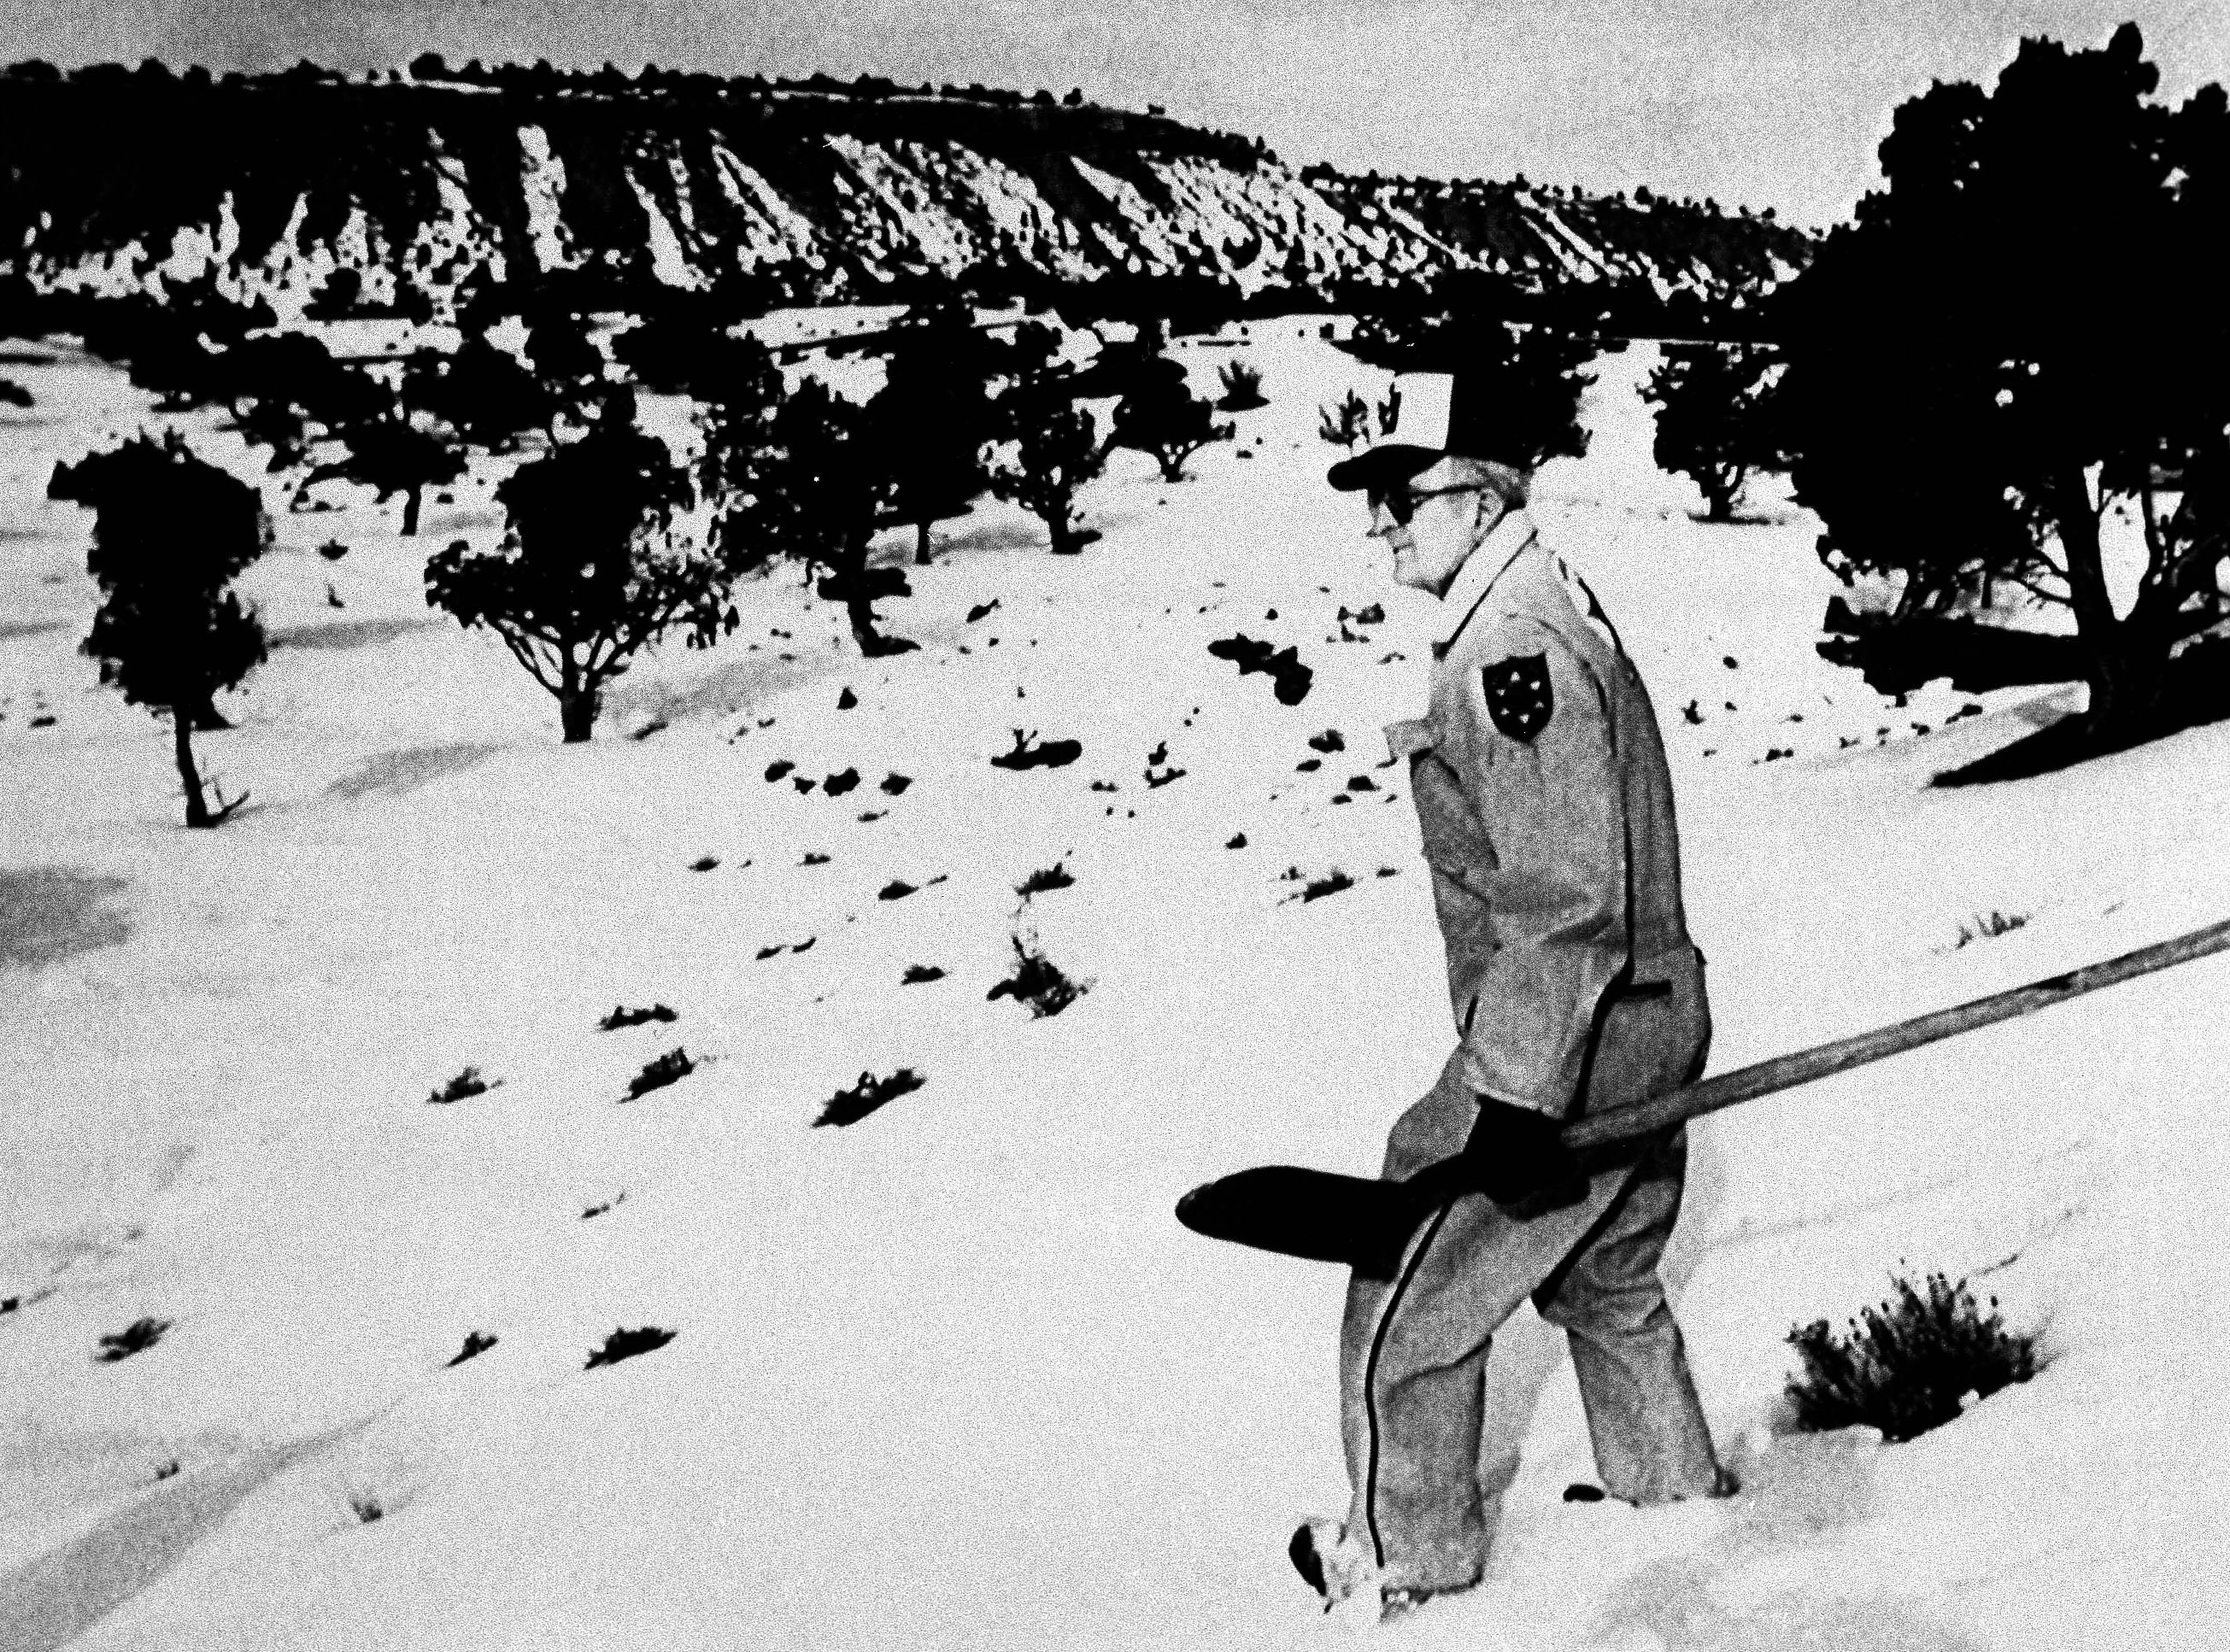 Jim Simone of the Carbon County Search and Rescue team sets out near Price, Utah, Jan. 28, 1989, in search of the remains of 15-year-old Sue Curtis, whose grave Ted Bundy described less than an hour before he was executed Tuesday.  Ms. Curtis disappeared from Brigham Young University in 1975 and is believed to be one of at least 23 murders Bundy confessed to in Utah, Idaho, Washington and Colorado.